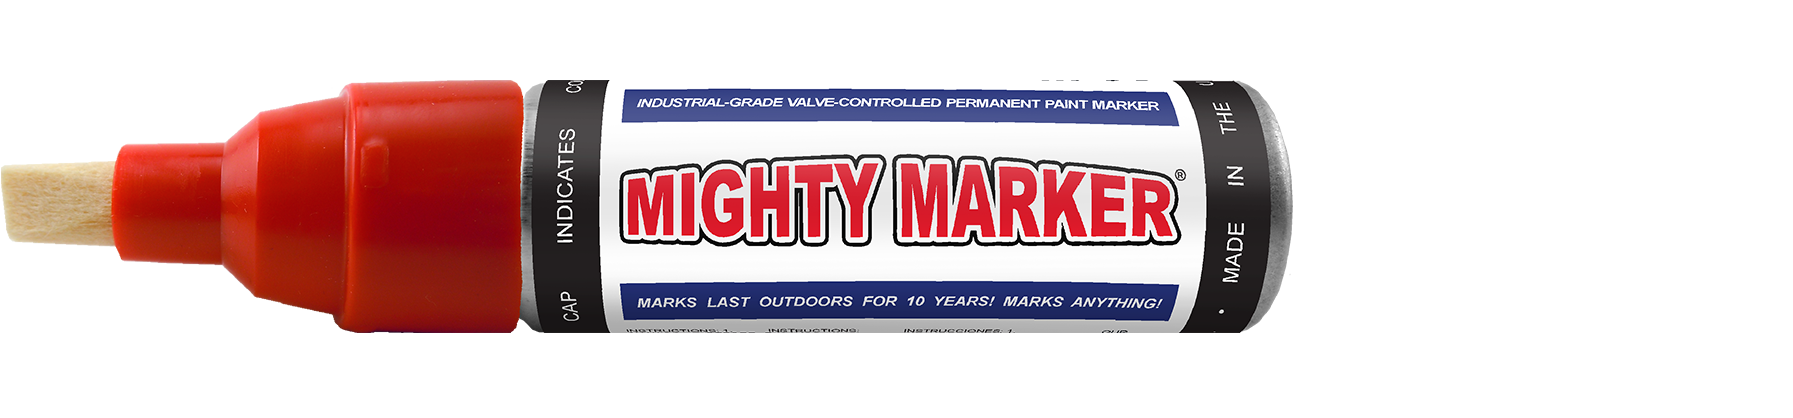 Mighty Marker Industrial Grade Paint Marker